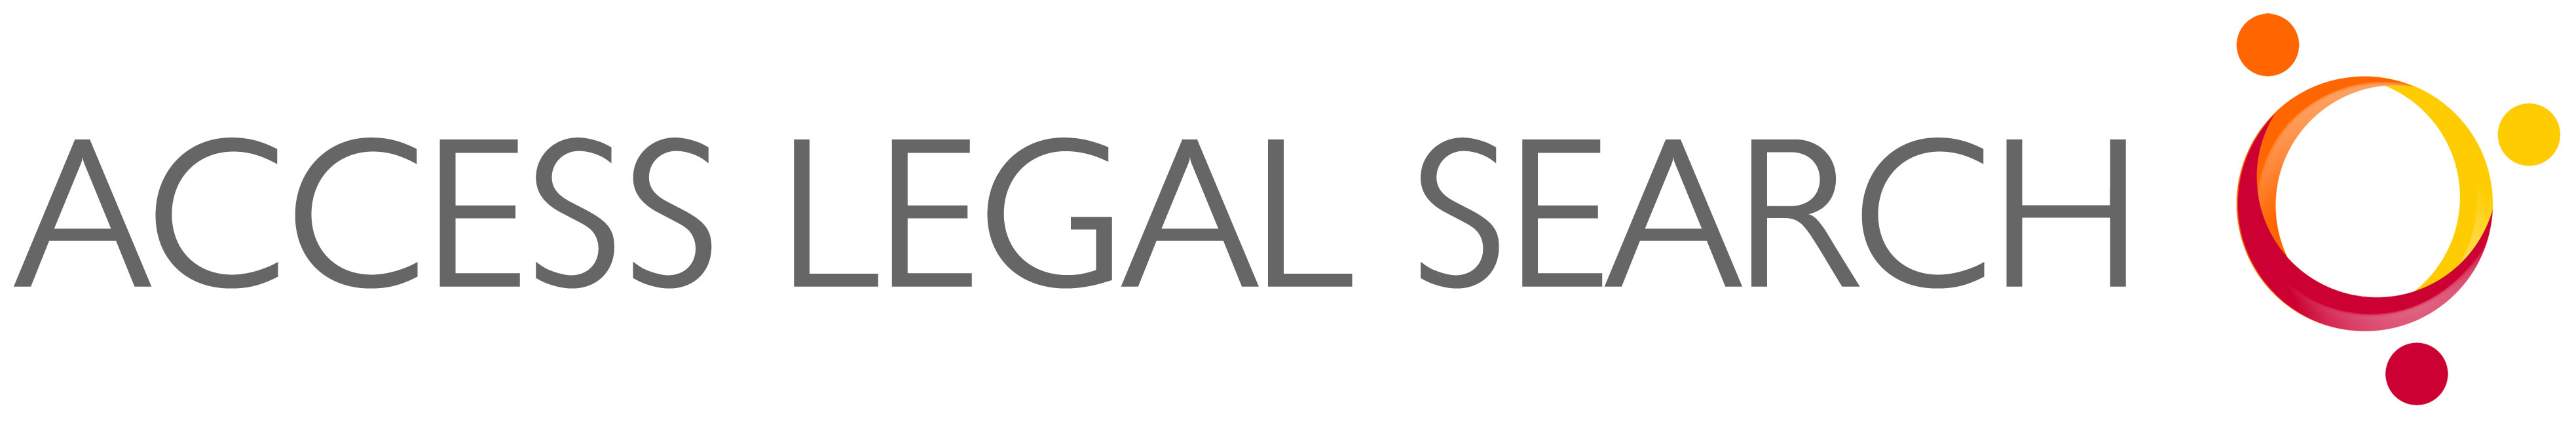 Access Legal Search